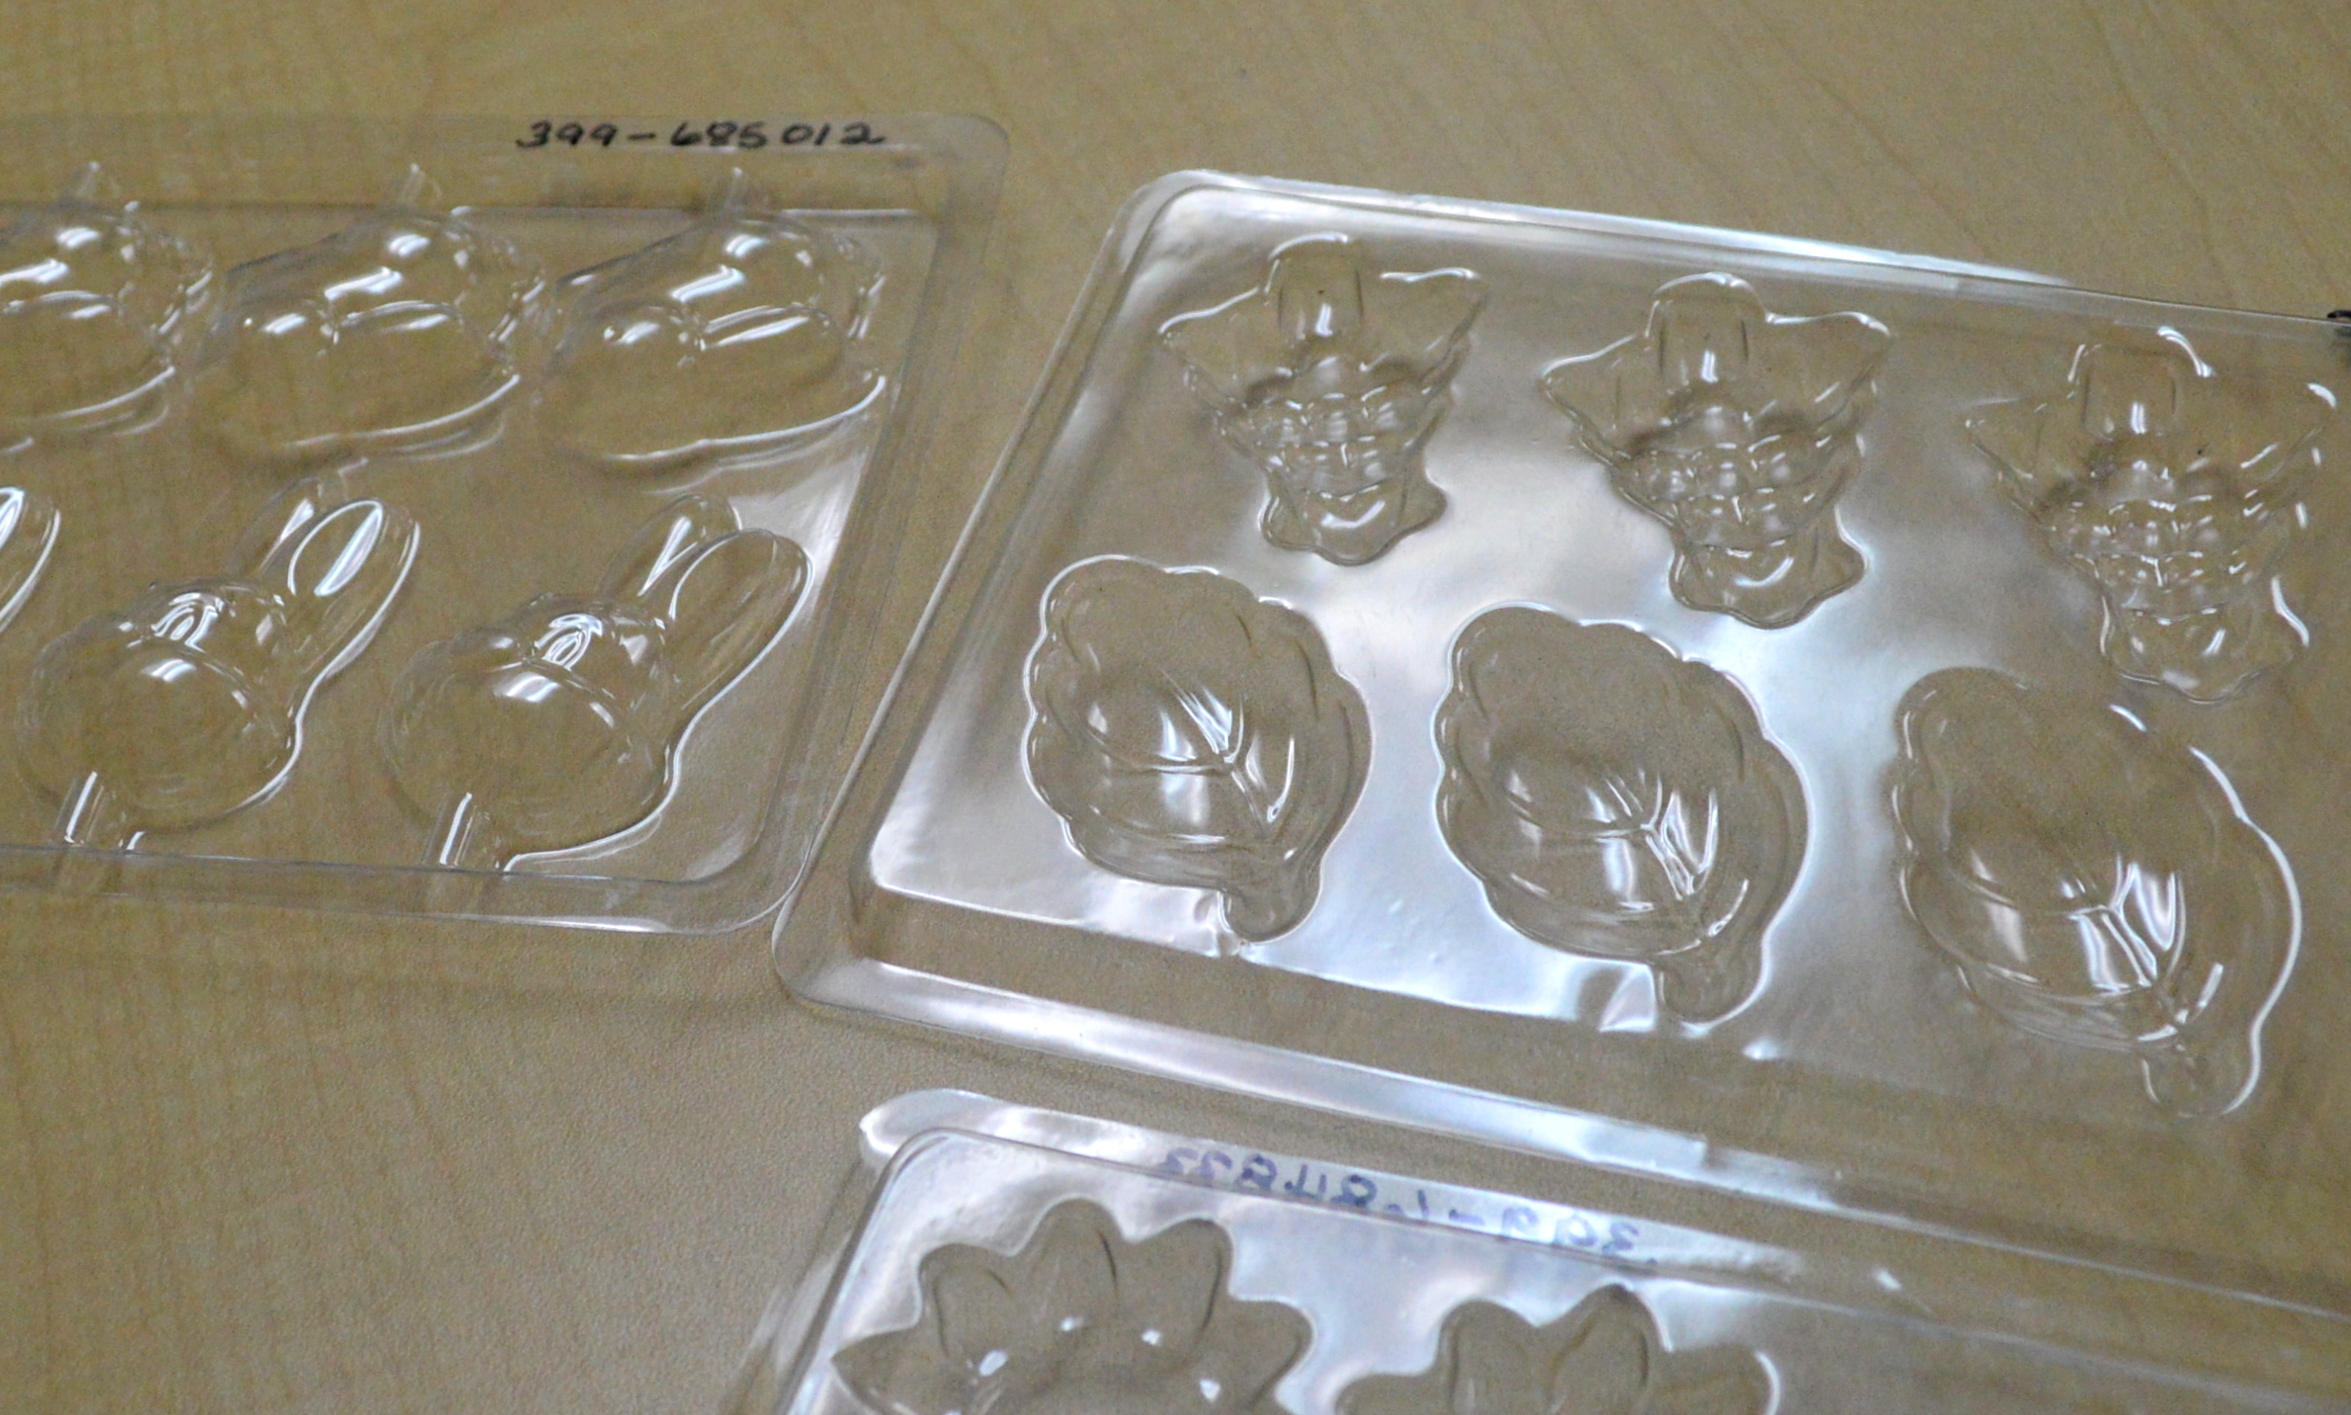 Image of a selection of plastic candy molds